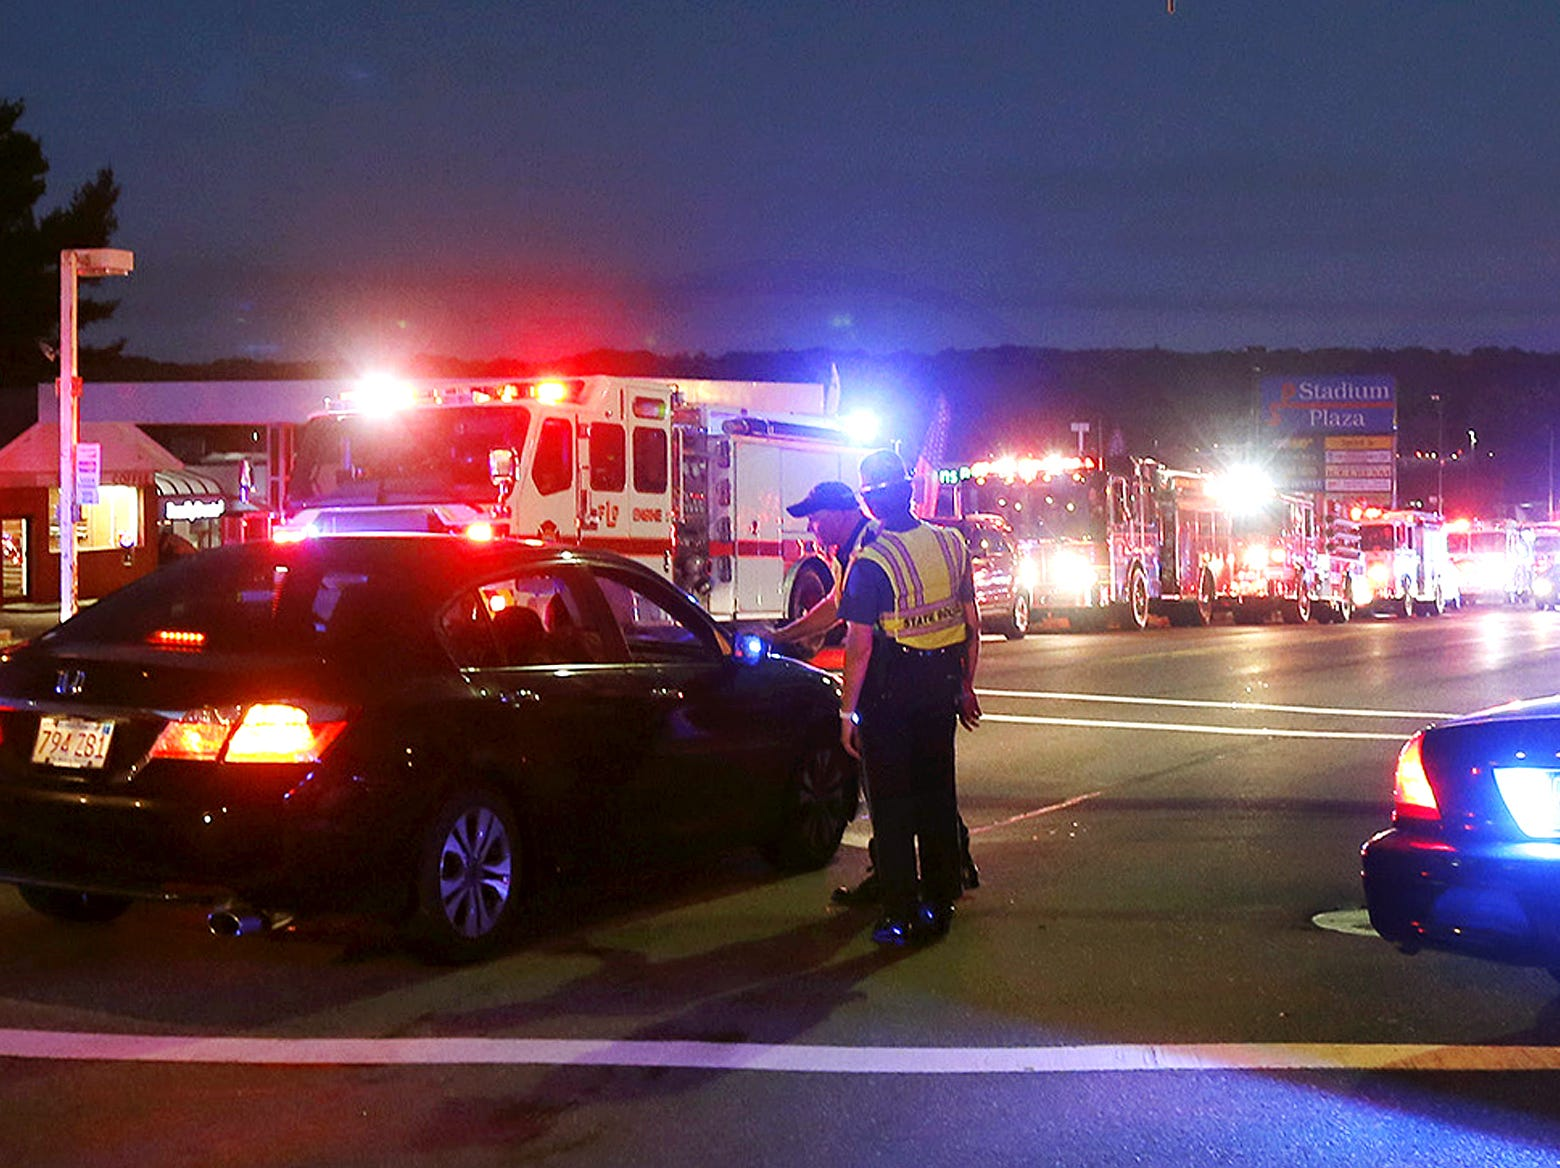 Police officers man a checkpoint as multiple fire trucks from surrounding communities are staged along a road Thursday, Sept. 13, 2018, in Lawrence, Mass. A problem with a gas line that feeds homes in several communities north of Boston triggered a series of gas explosions and fires.